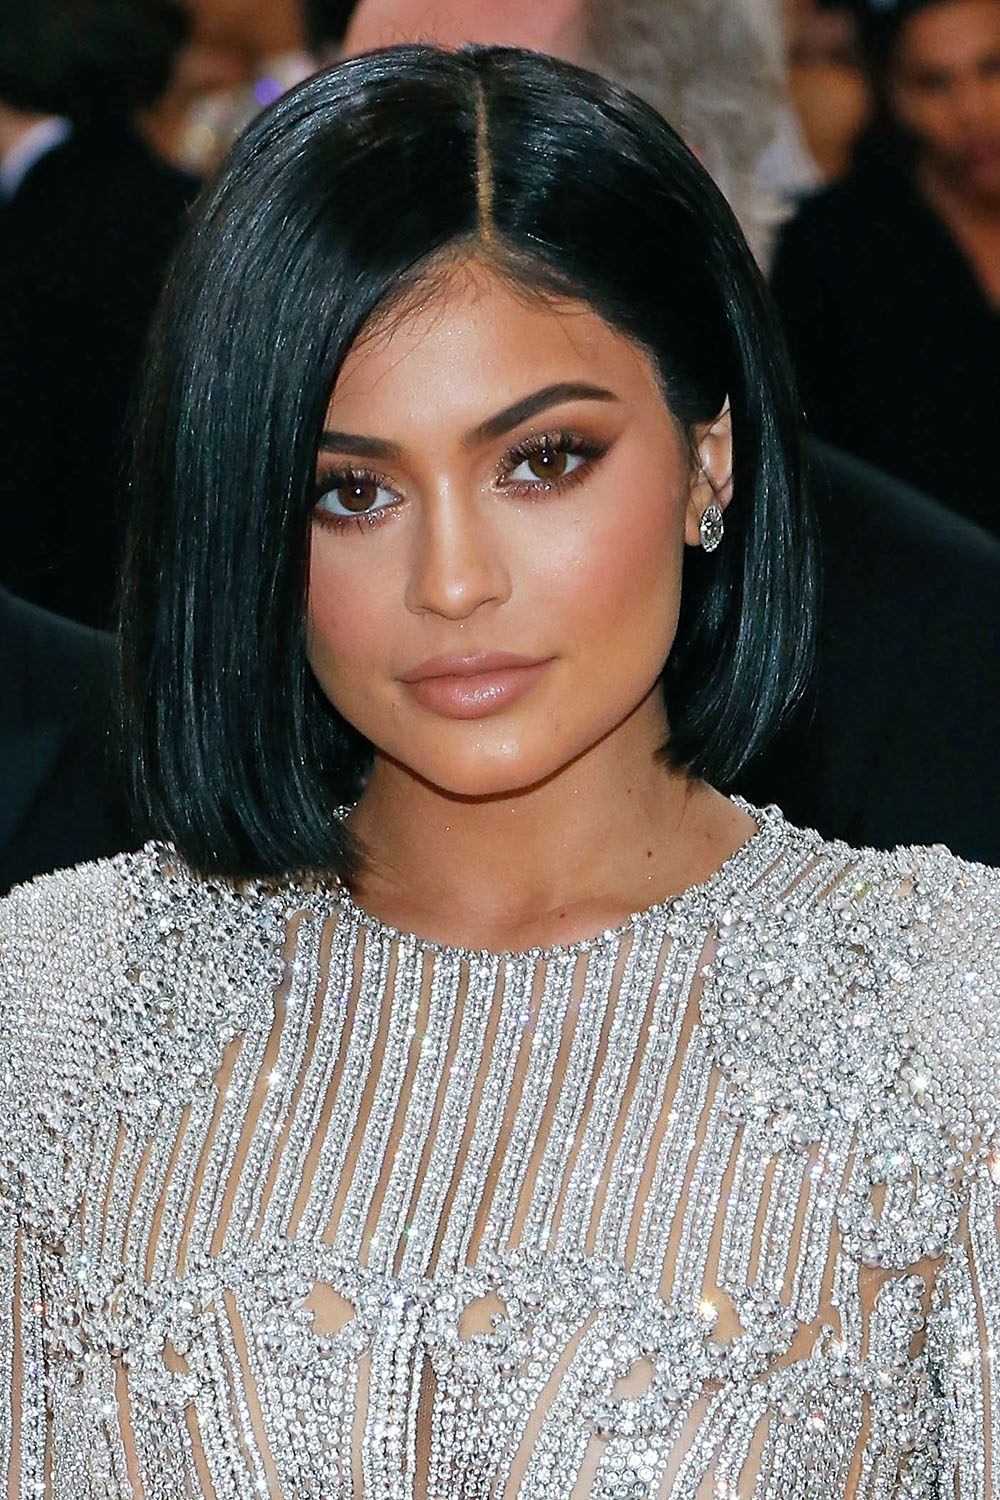 Here are the 4 Mascaras Kylie Jenner Swears By